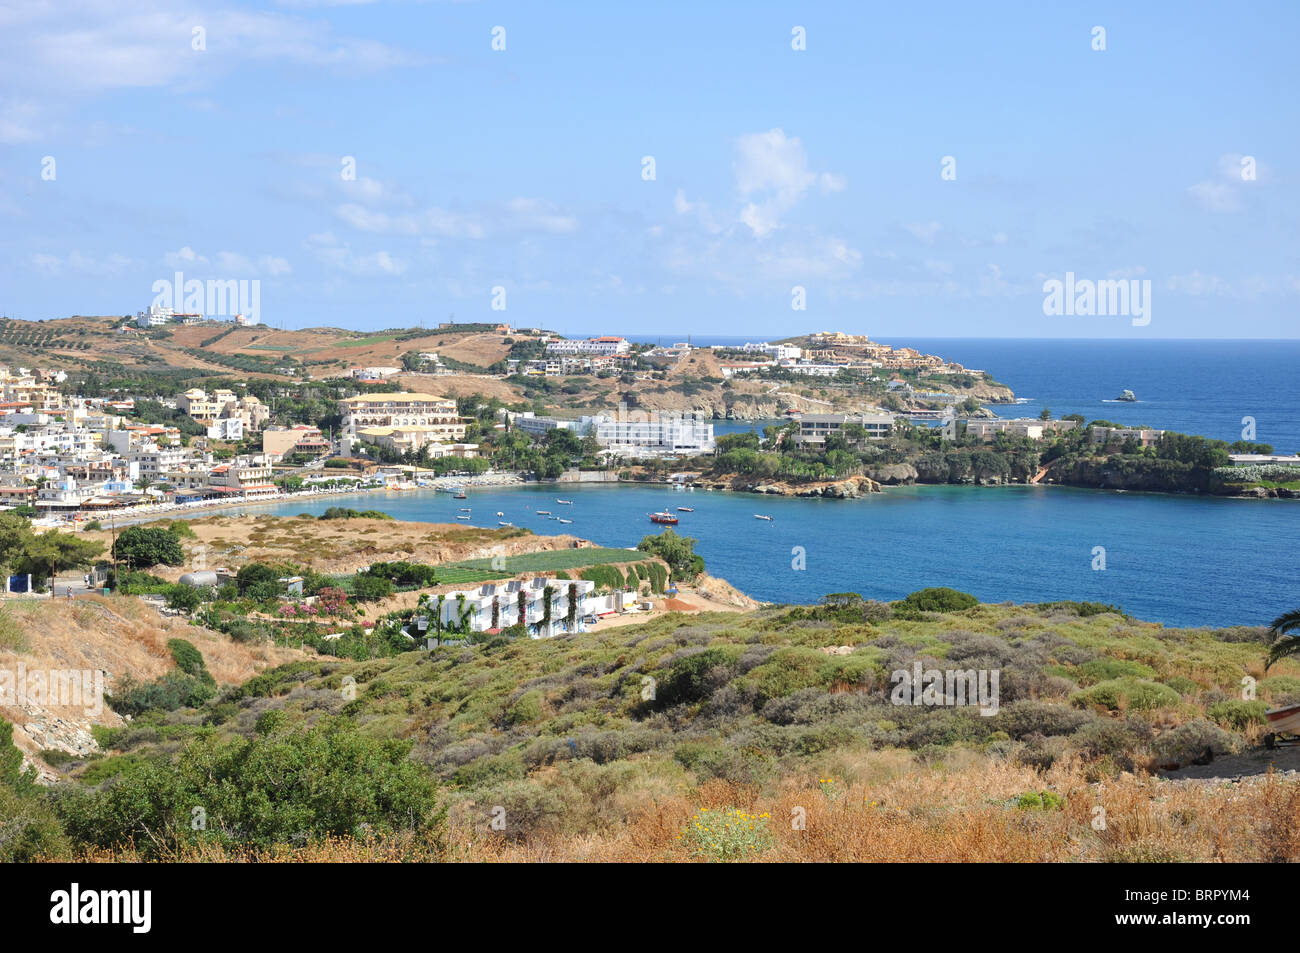 The bay at Agia Pelagia in Crete, Greece - Stock Image